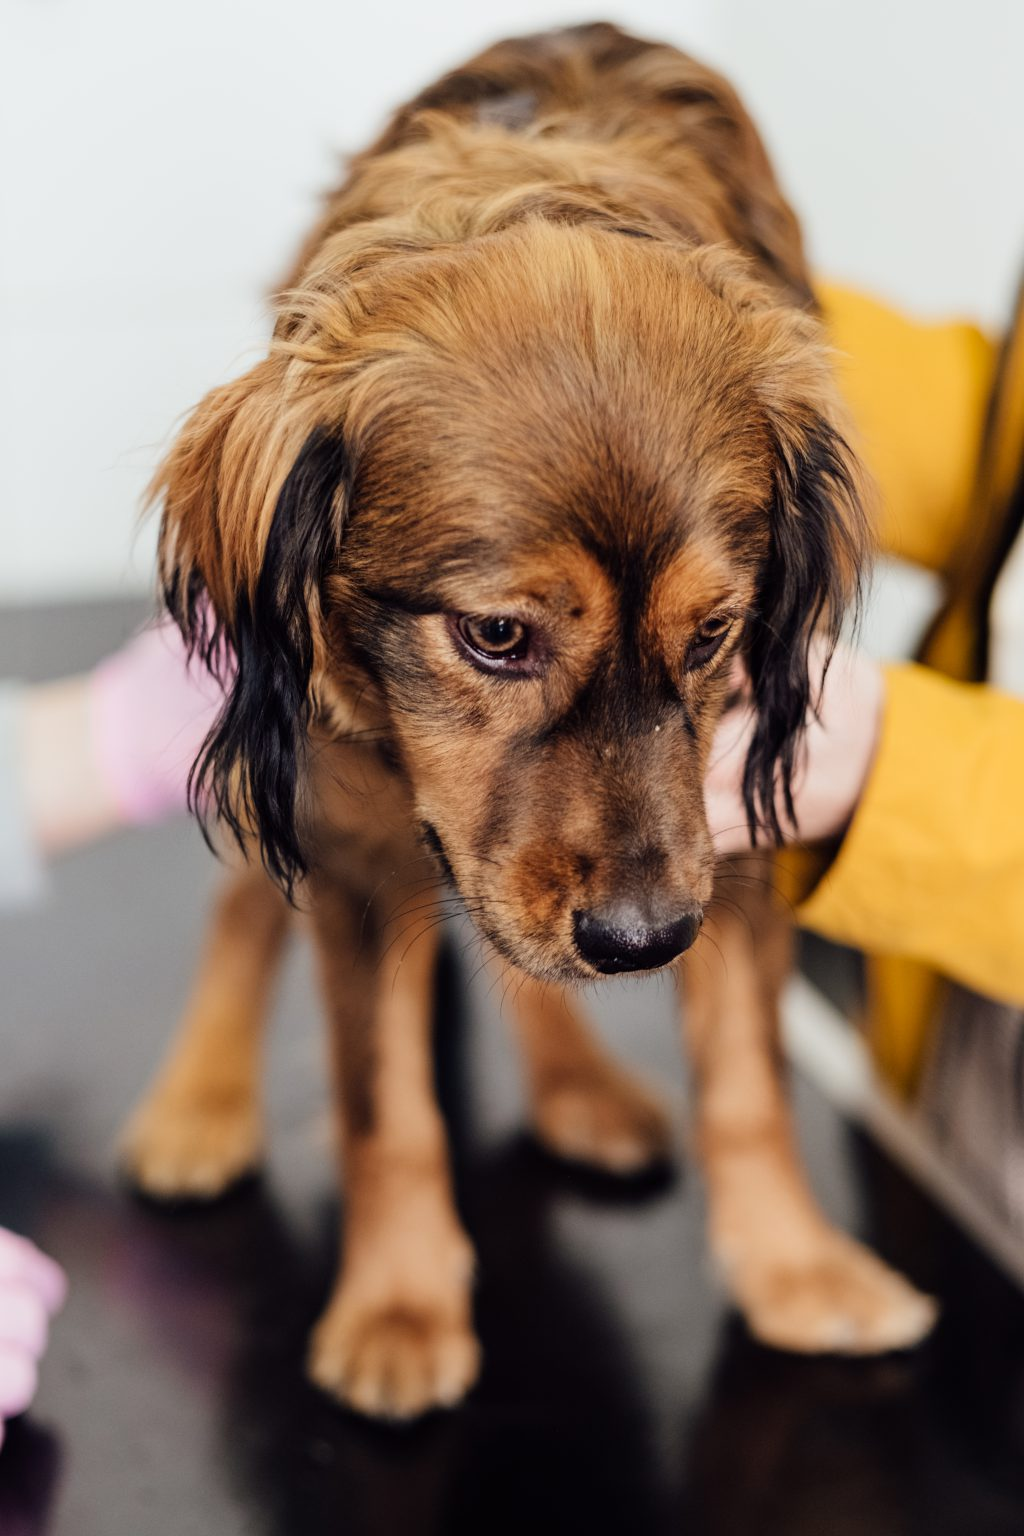 A puppy during a vet examination - free stock photo